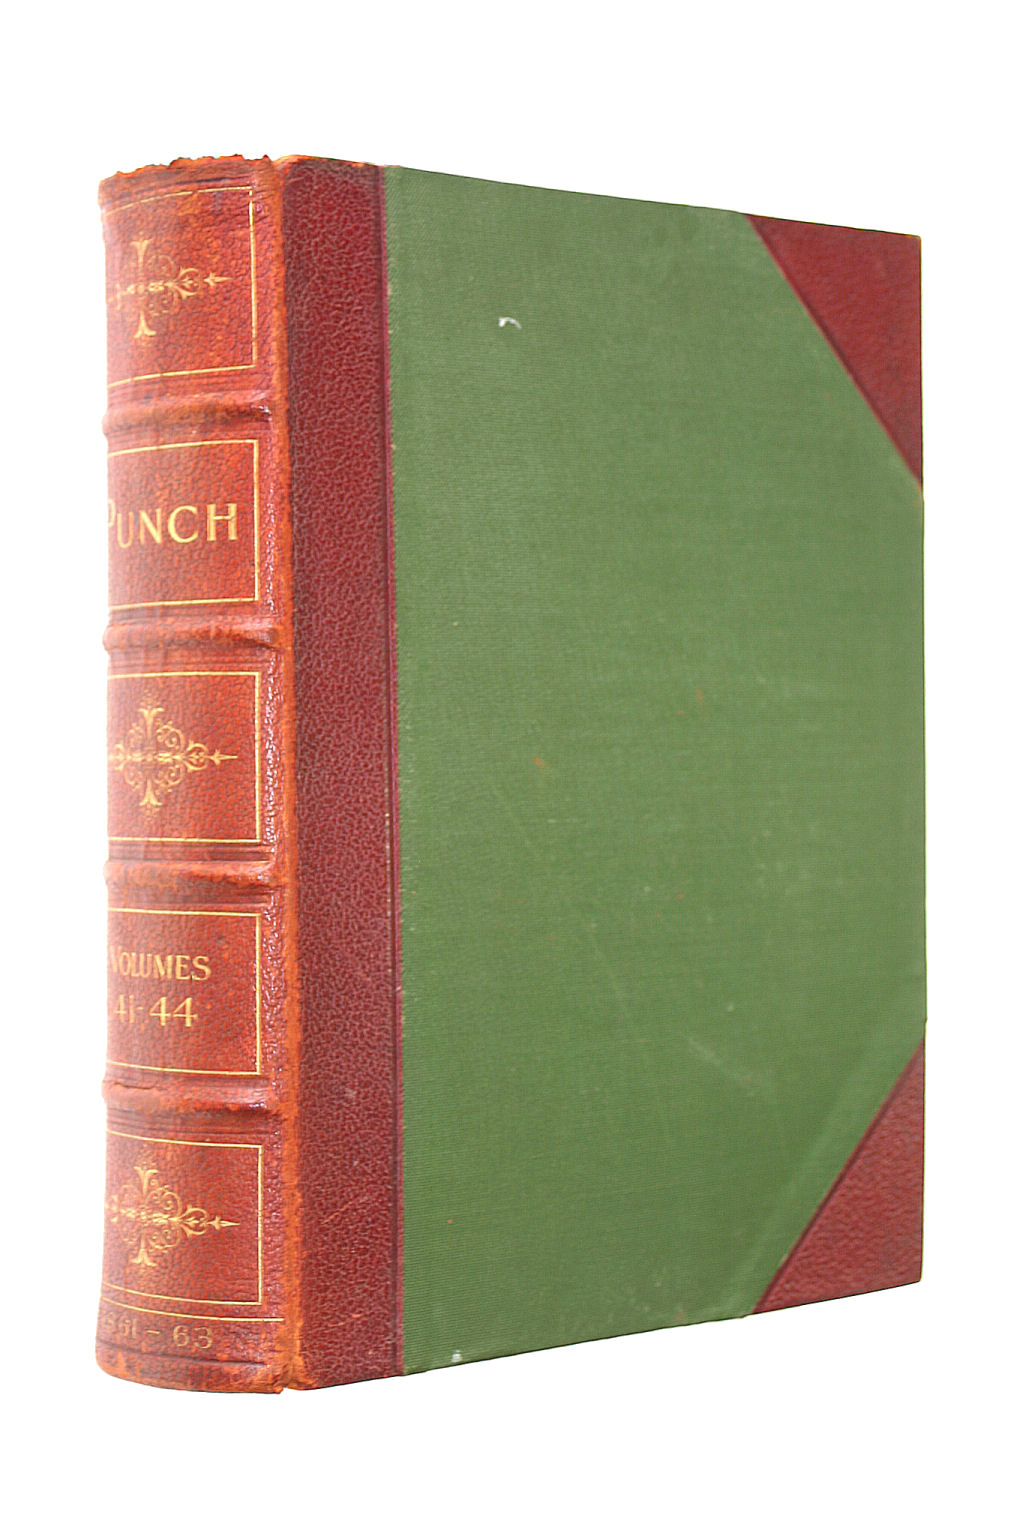 Image for Punch Volumes 41-44 (1861-1863)